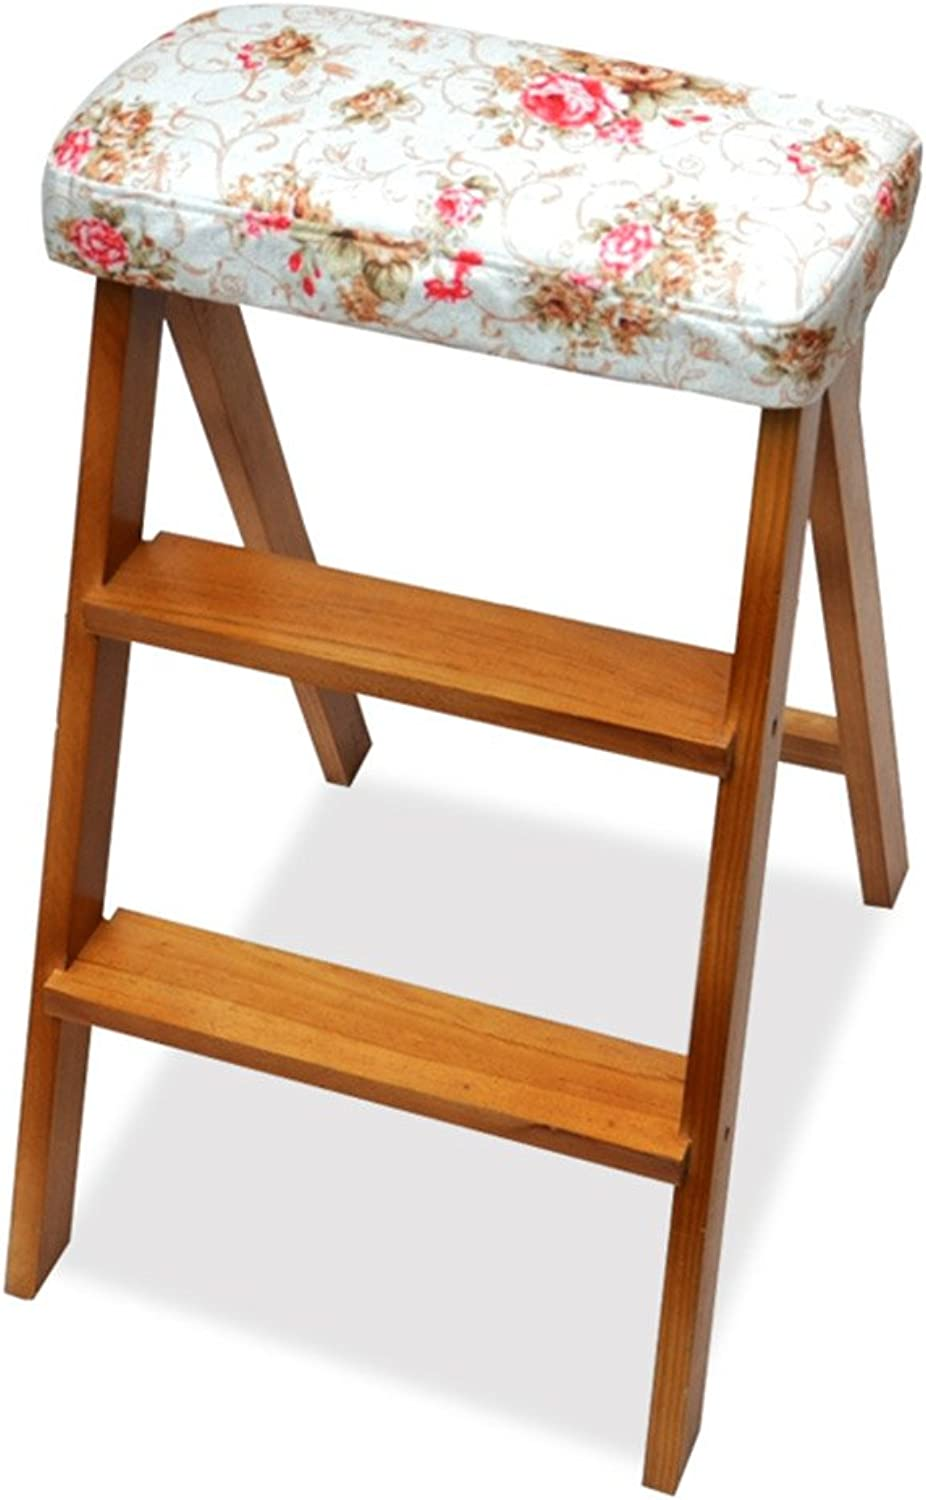 ZPWSNH Kitchen Ladder Stool Folding Ladder Chair Multifunctional Portable Home High Wooden Stool Step Stool (color   E)